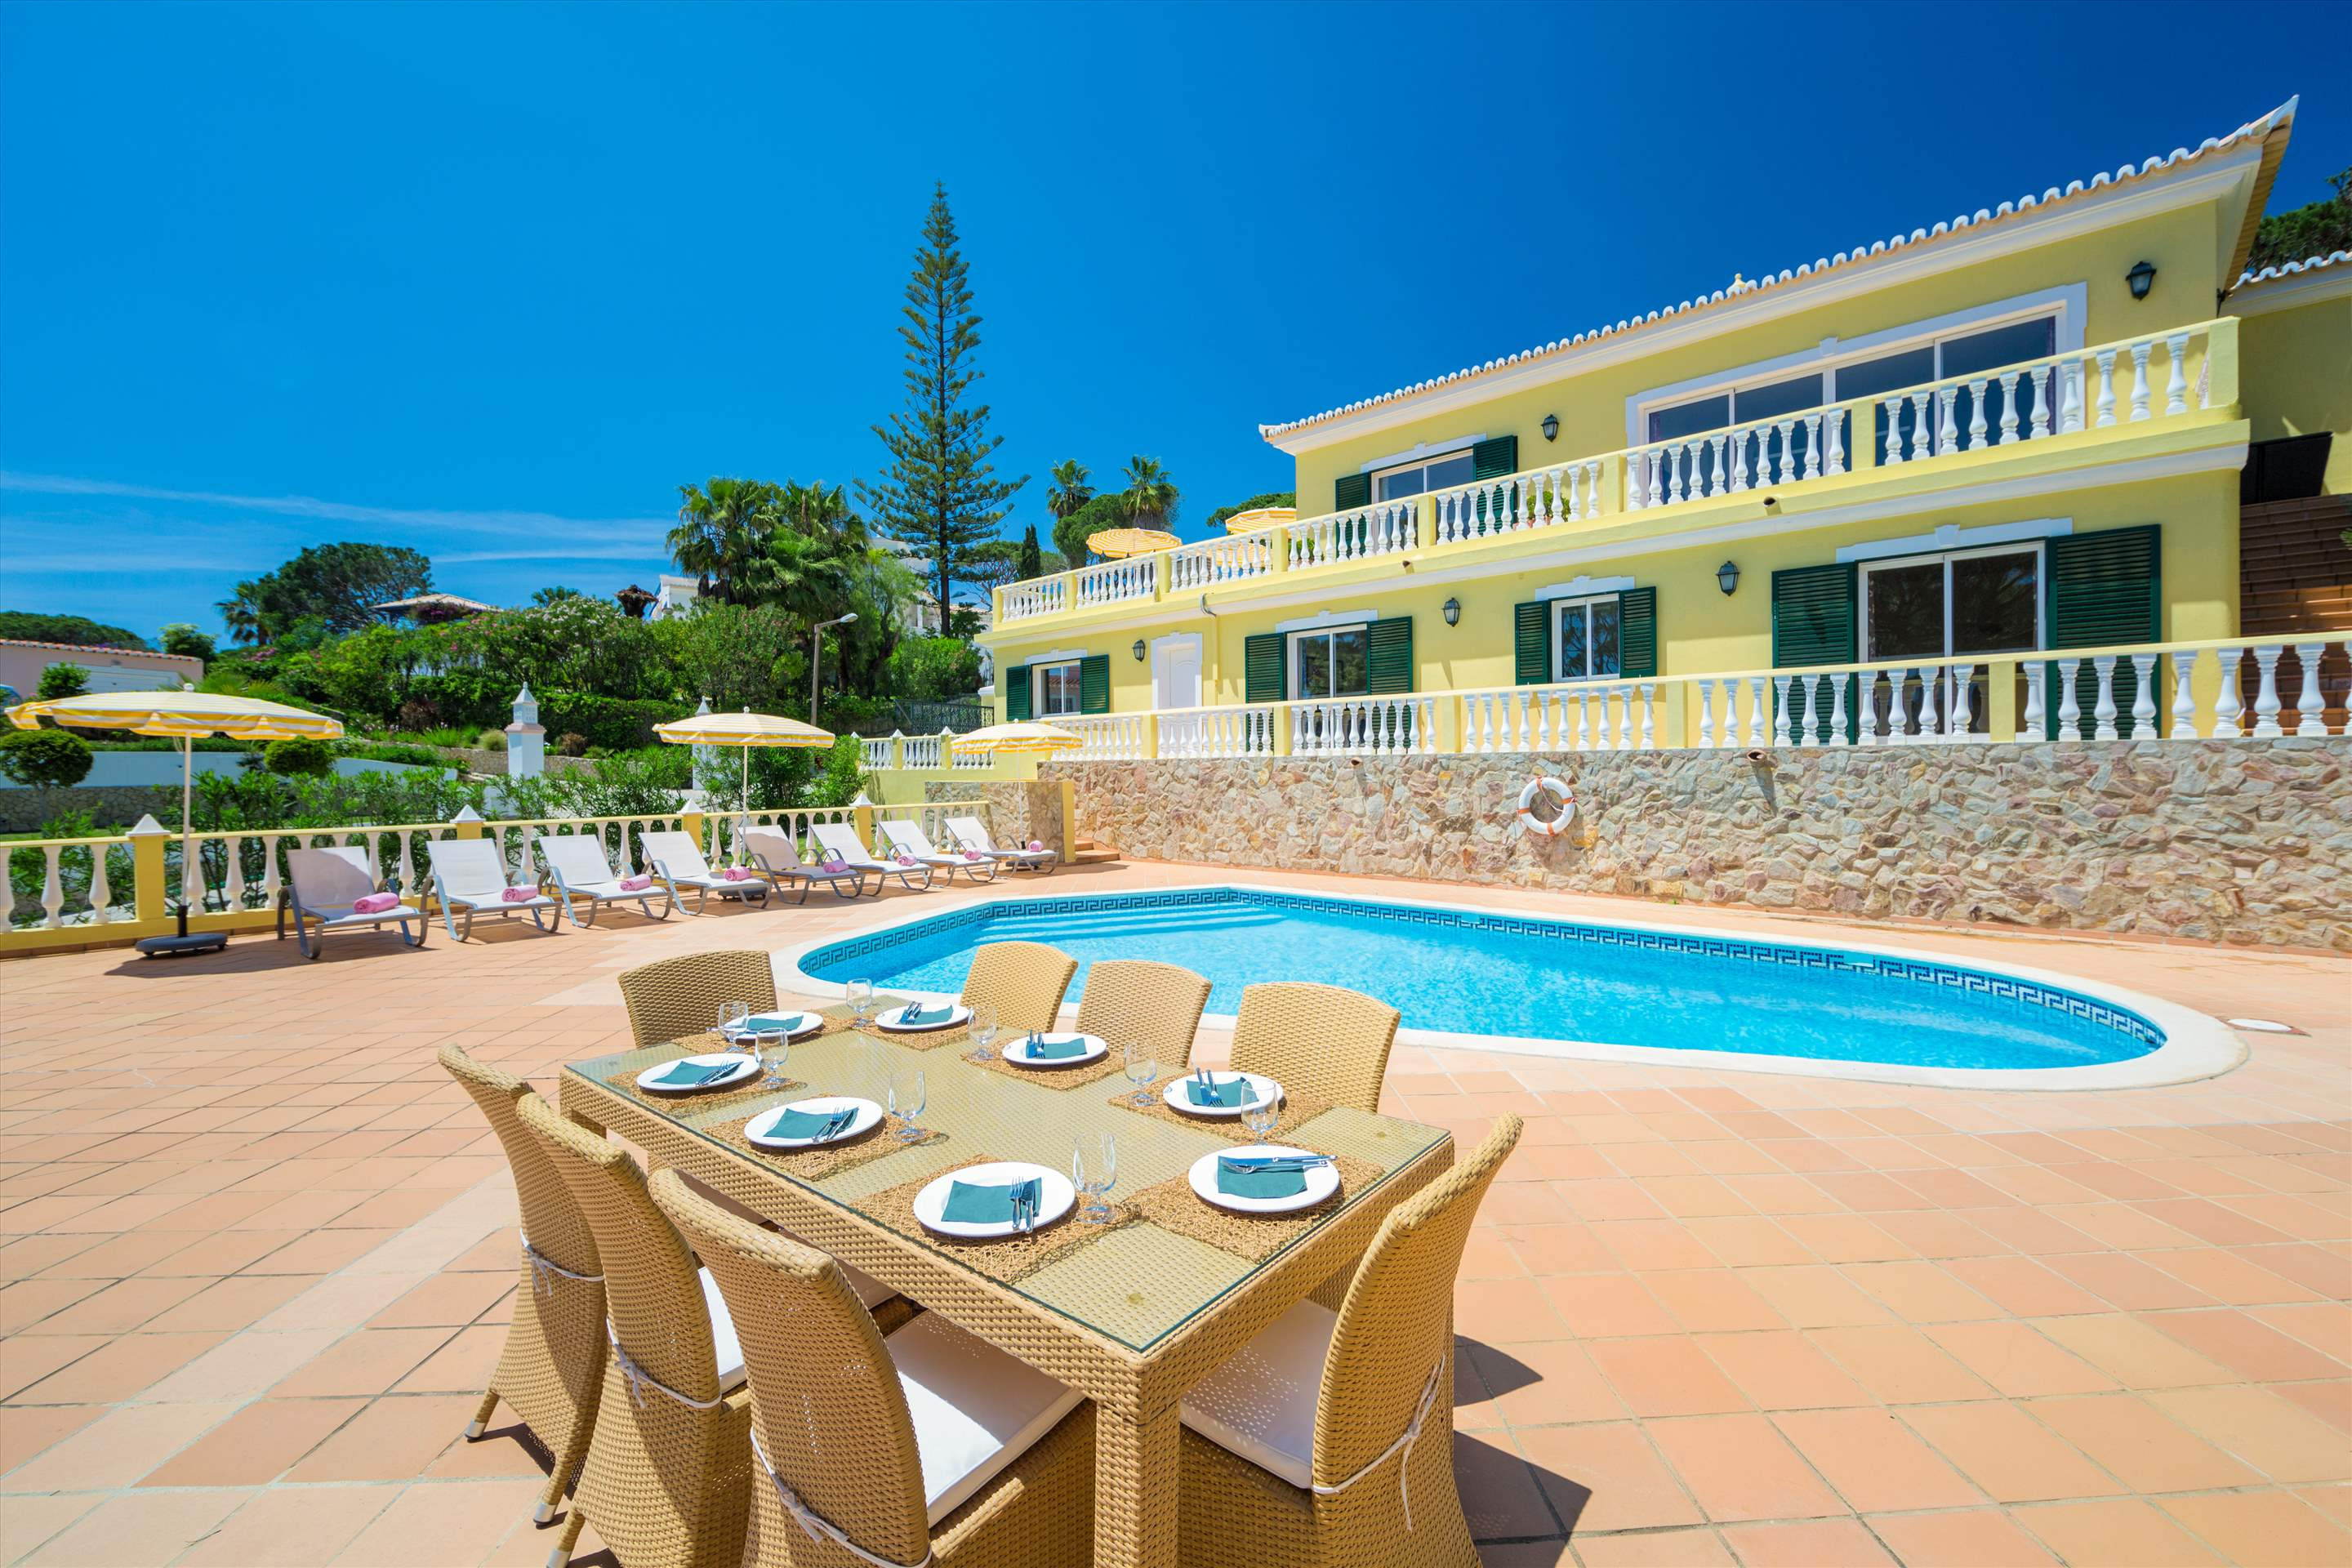 Villa Natasha, 4 bedroom villa in Vale do Lobo, Algarve Photo #1